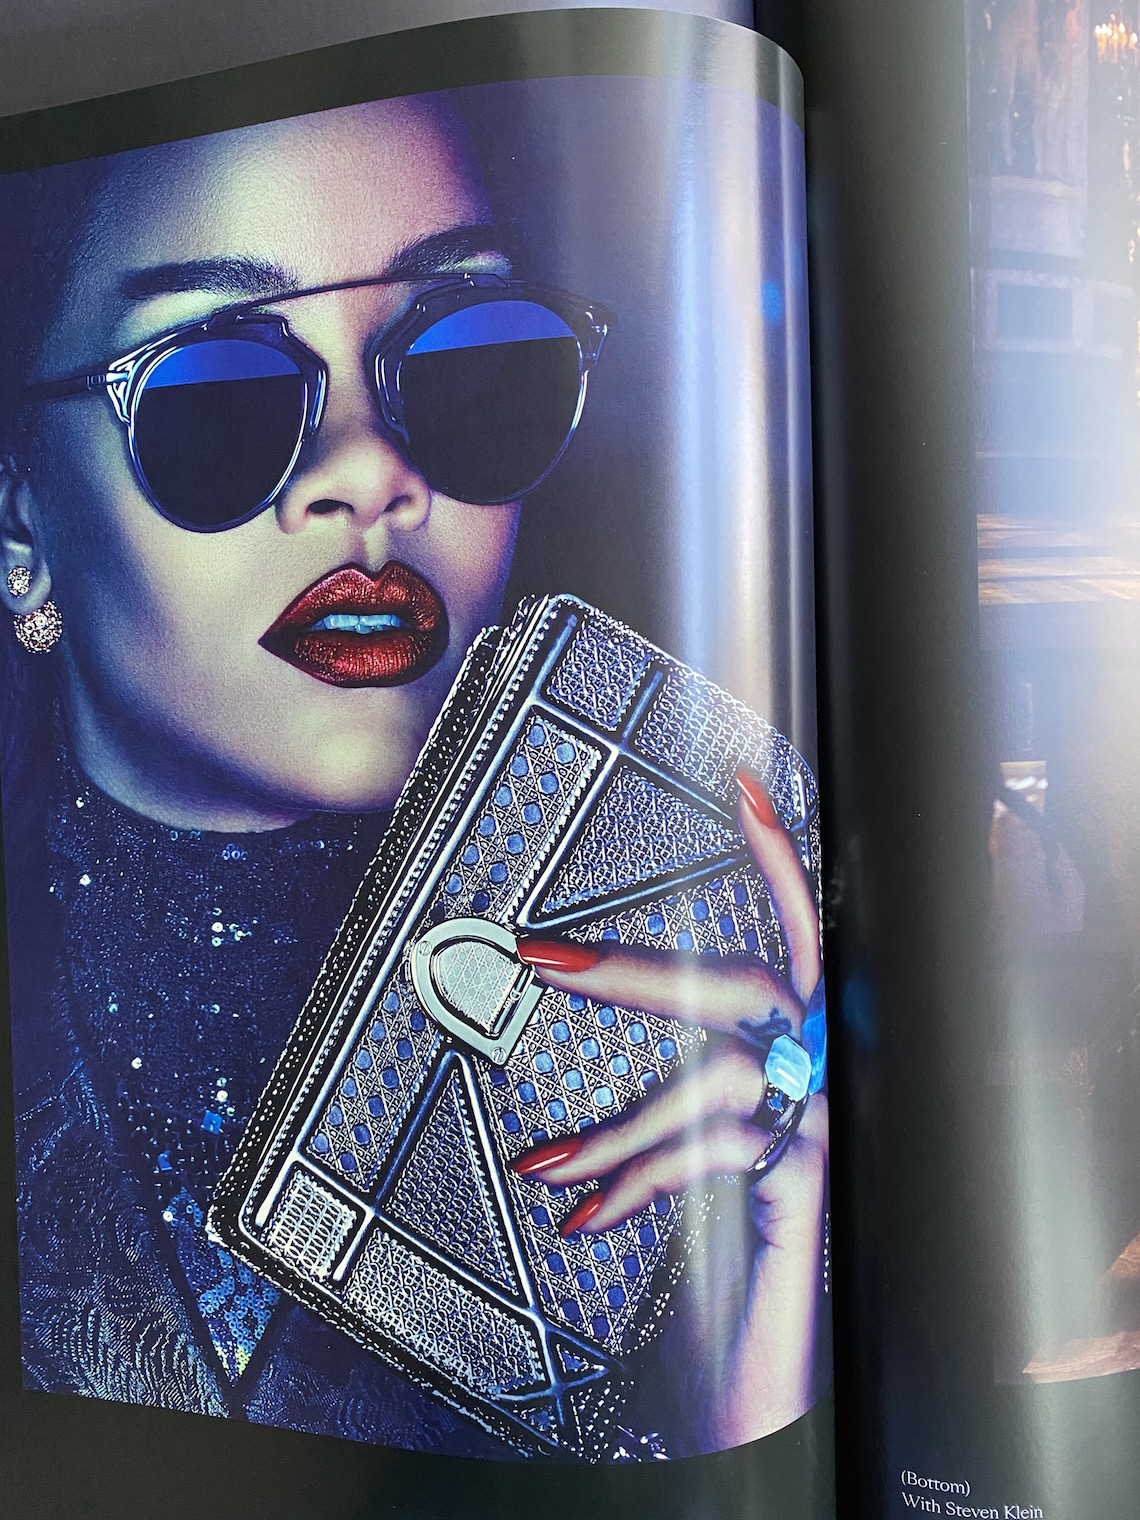 rihanna is a muse-favorite things about rihanna